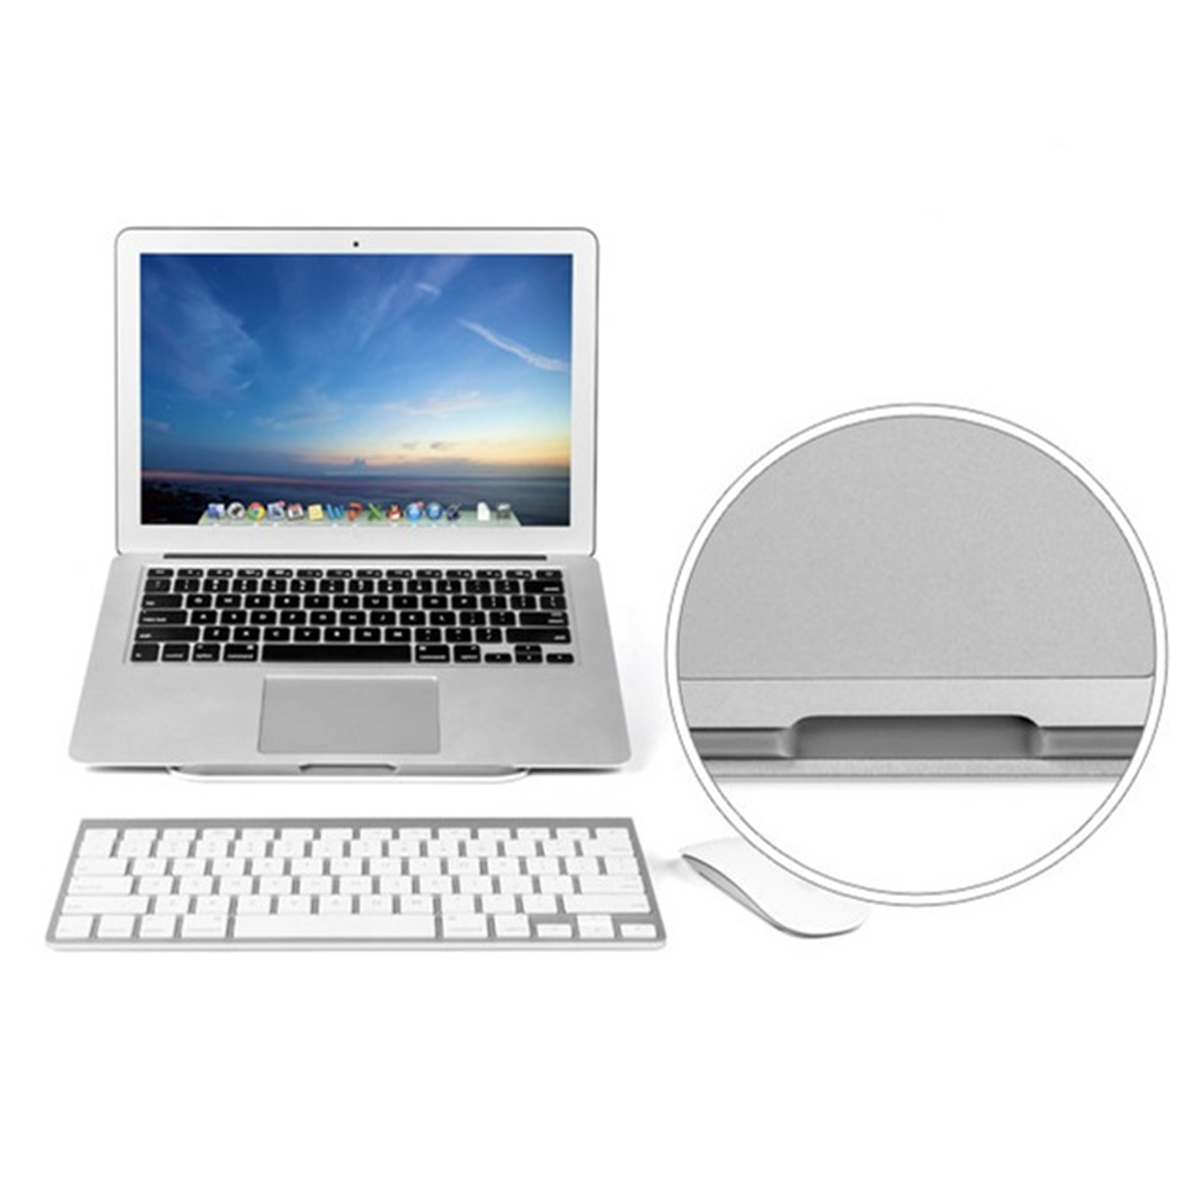 Aluminum Alloy Laptop Stand Holder For 11-15.6 Inch Laptop Notebook Macbook